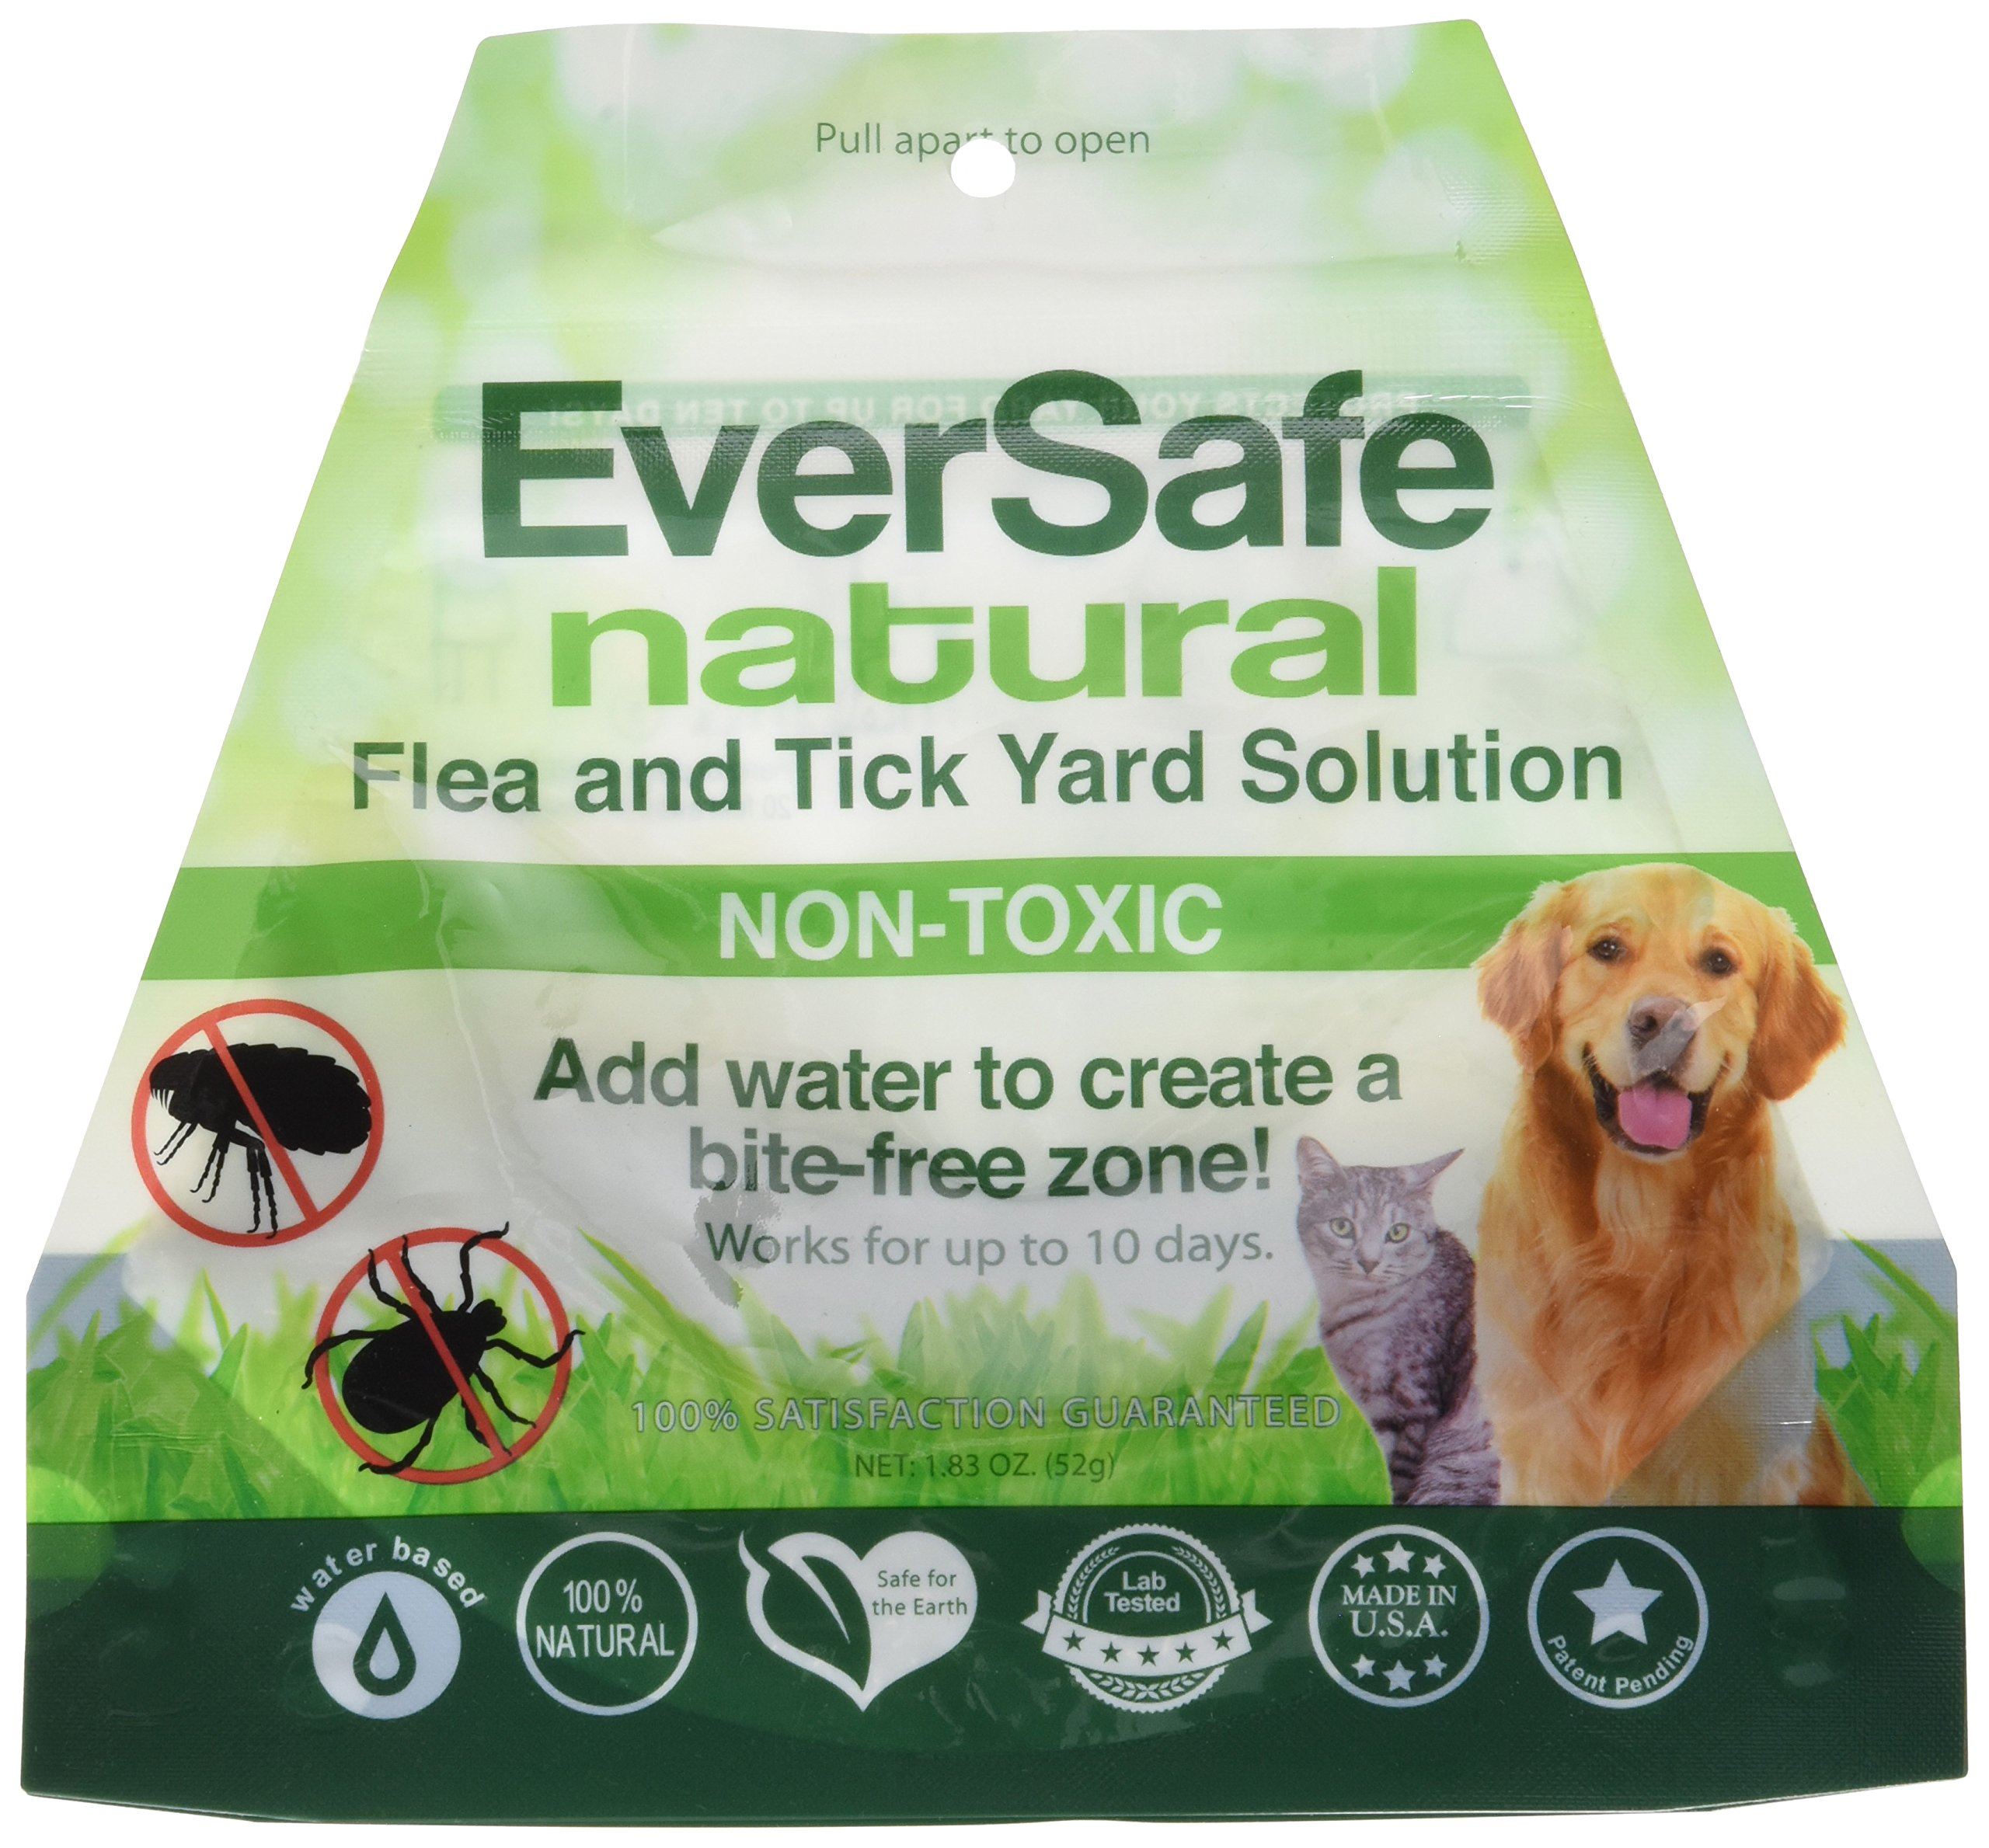 EverSafe ESFTY Natural Flea & Tick Yard Solution Home-Pest-Repellent, Green/White by EverSafe (Image #1)